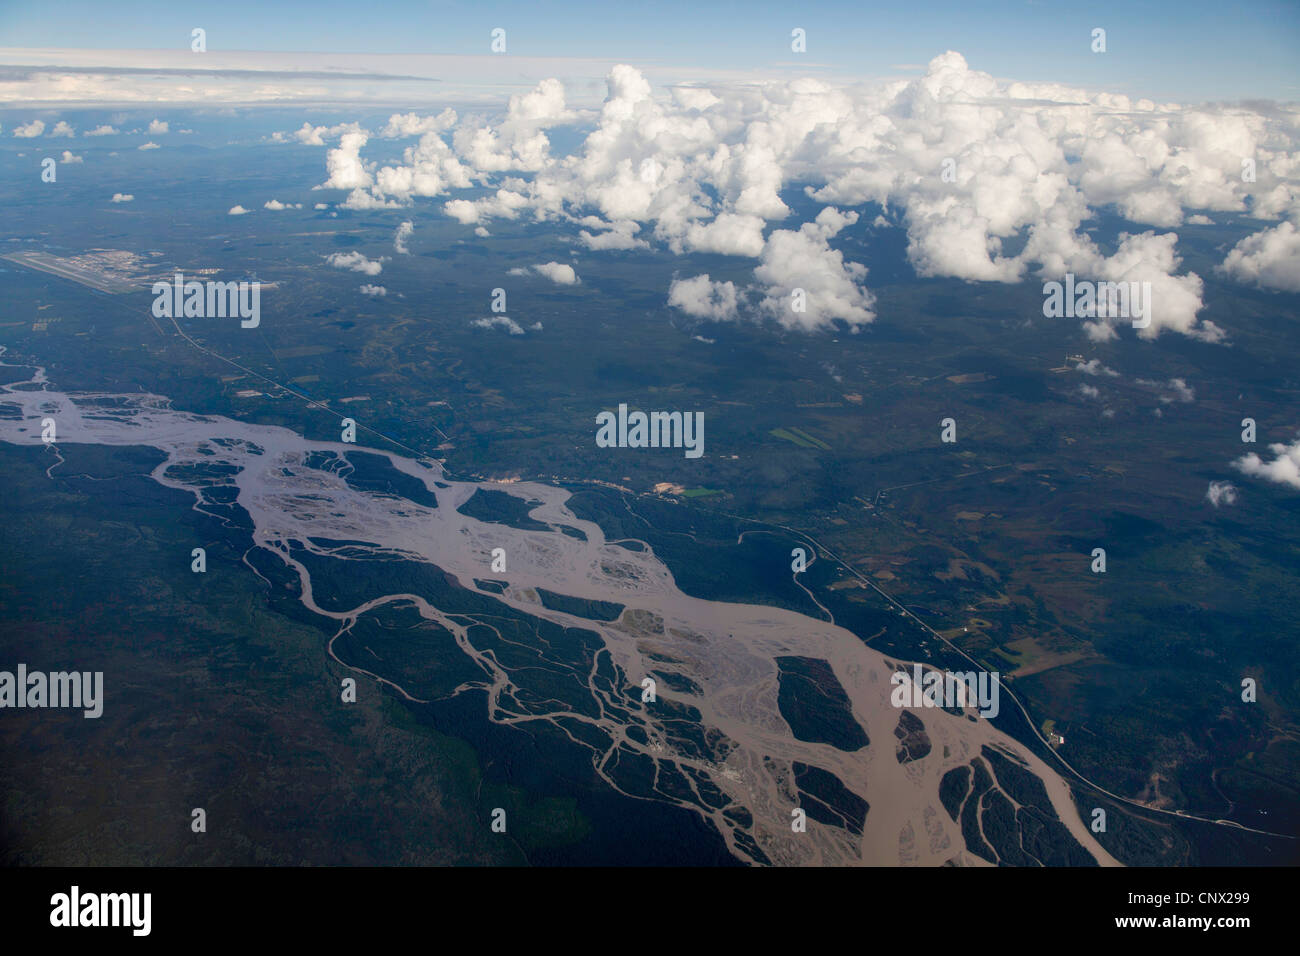 aerial view of Tanana River near Fairbanks, USA, Alaska - Stock Image